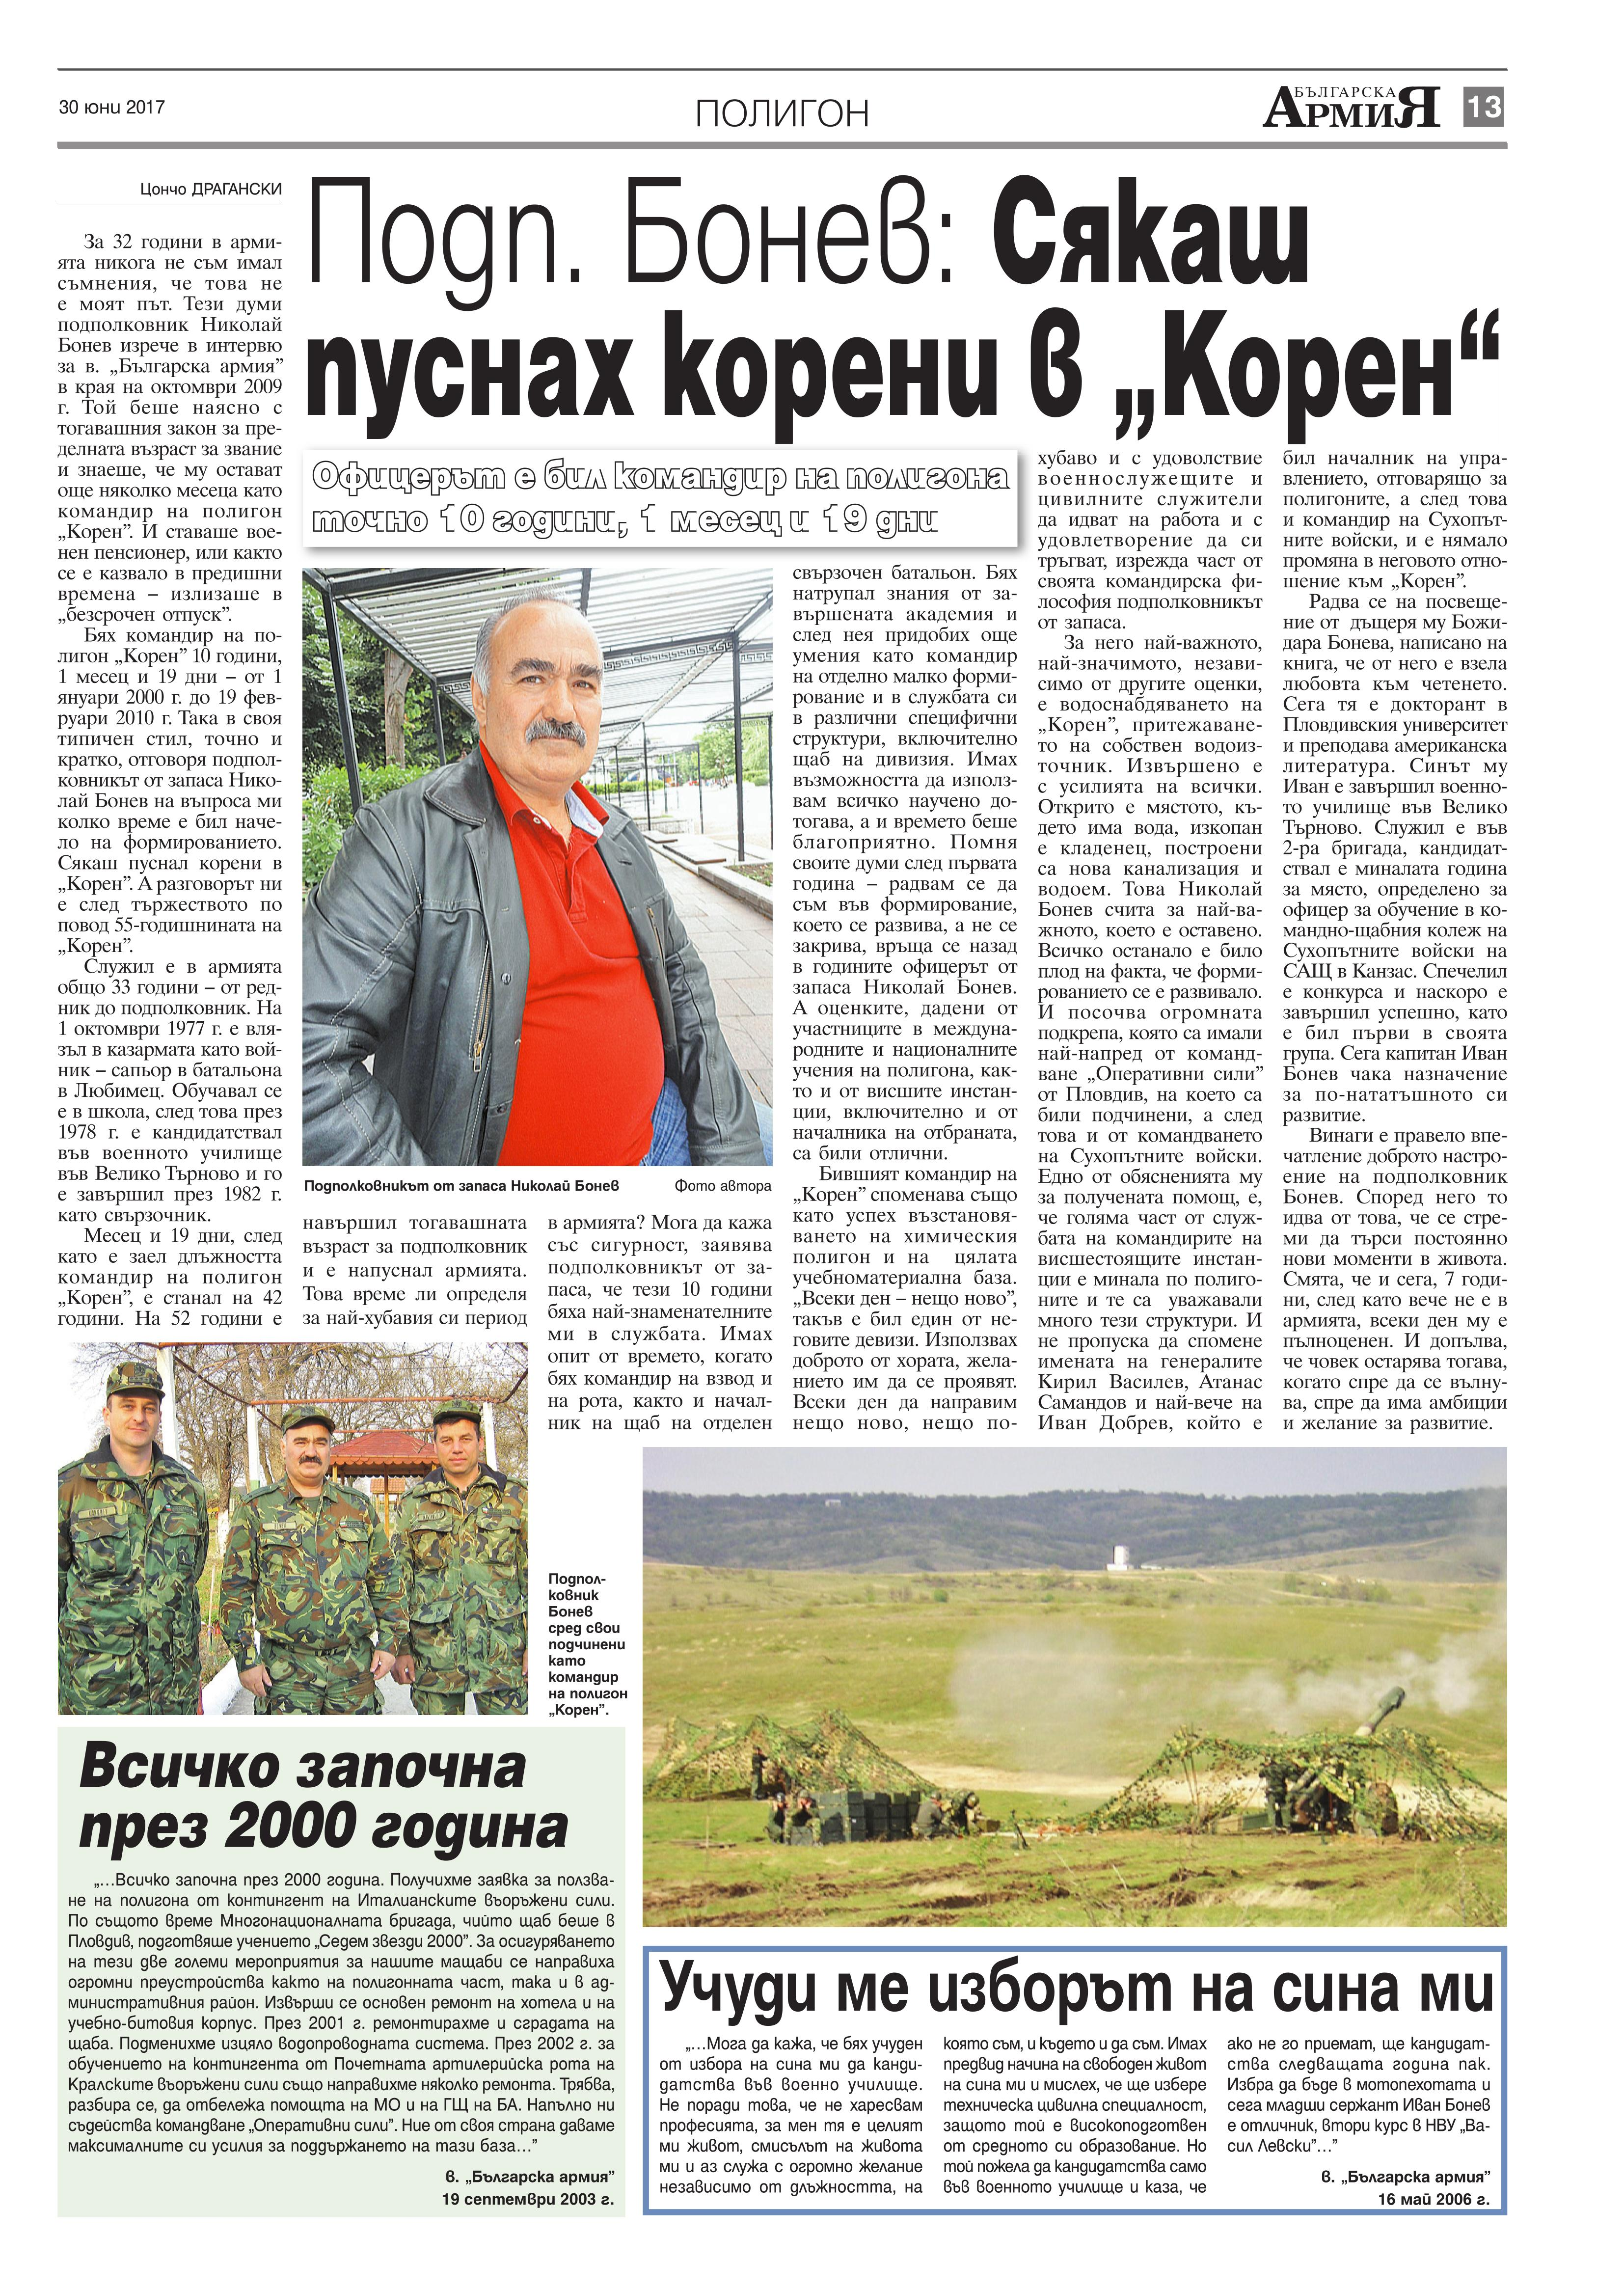 https://www.armymedia.bg/wp-content/uploads/2015/06/13.page1_-23.jpg